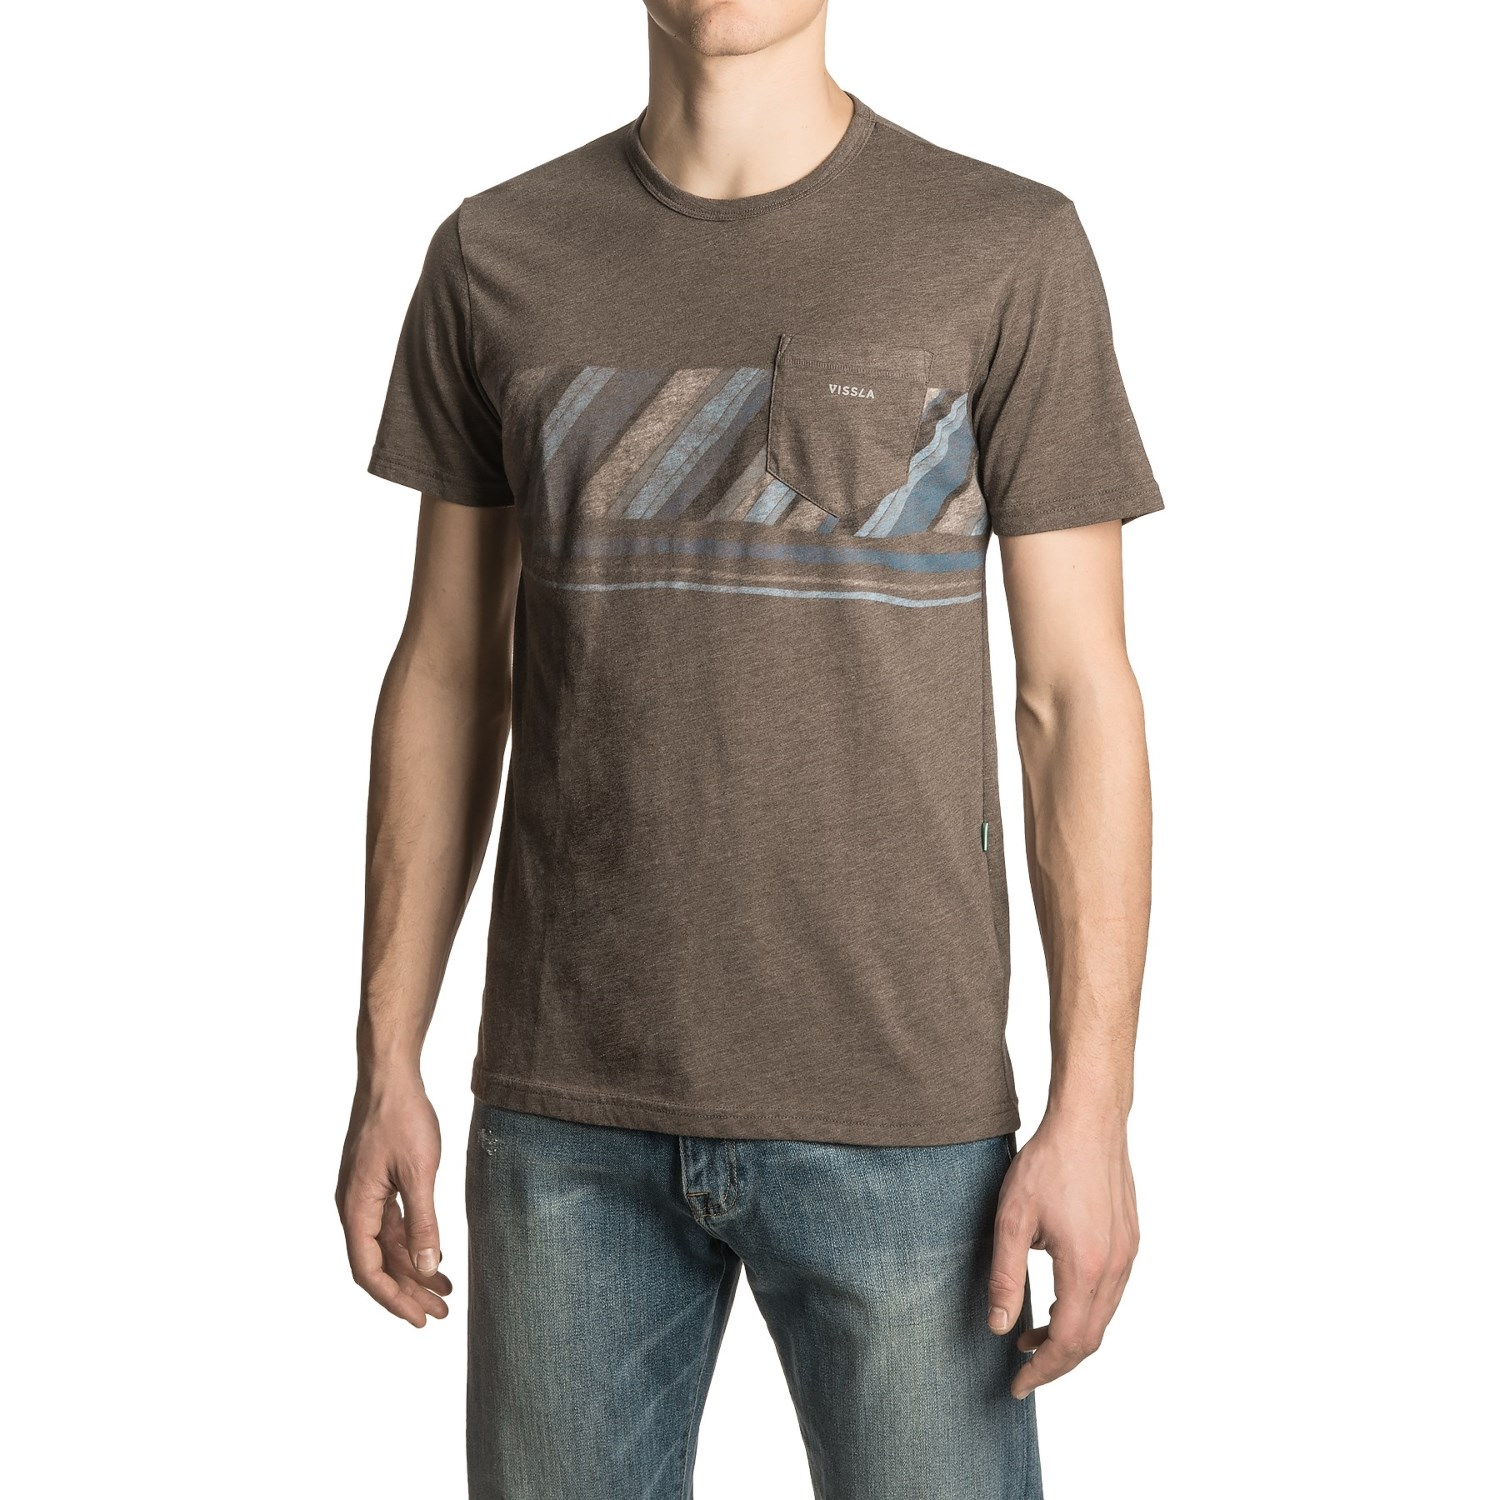 Images of Mens Brown T Shirt - Fashion Trends and Models